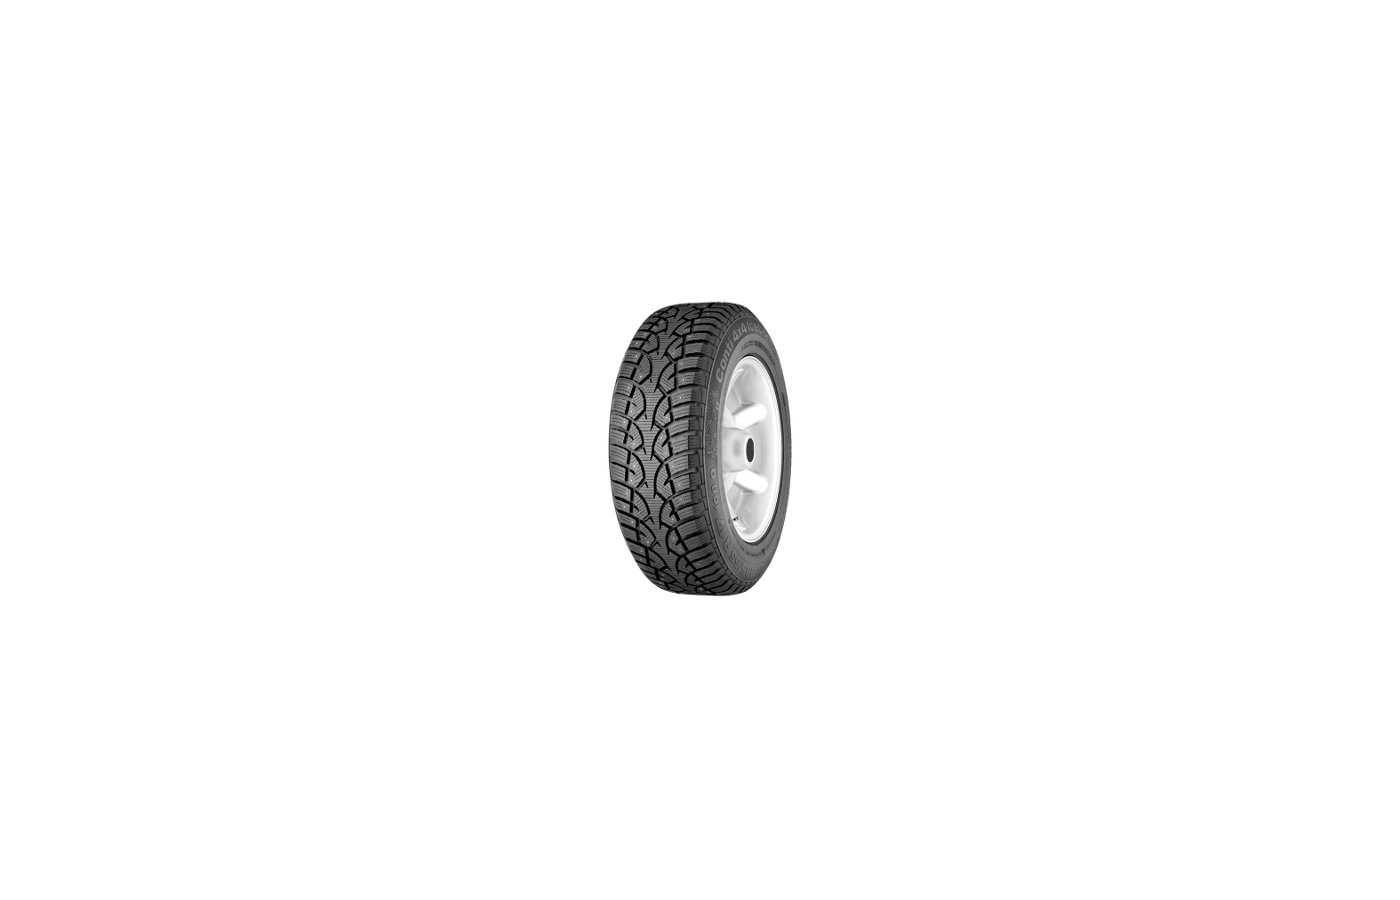 Шина Continental Conti4x4IceContact 225/70 R16 TL 107T XL шип